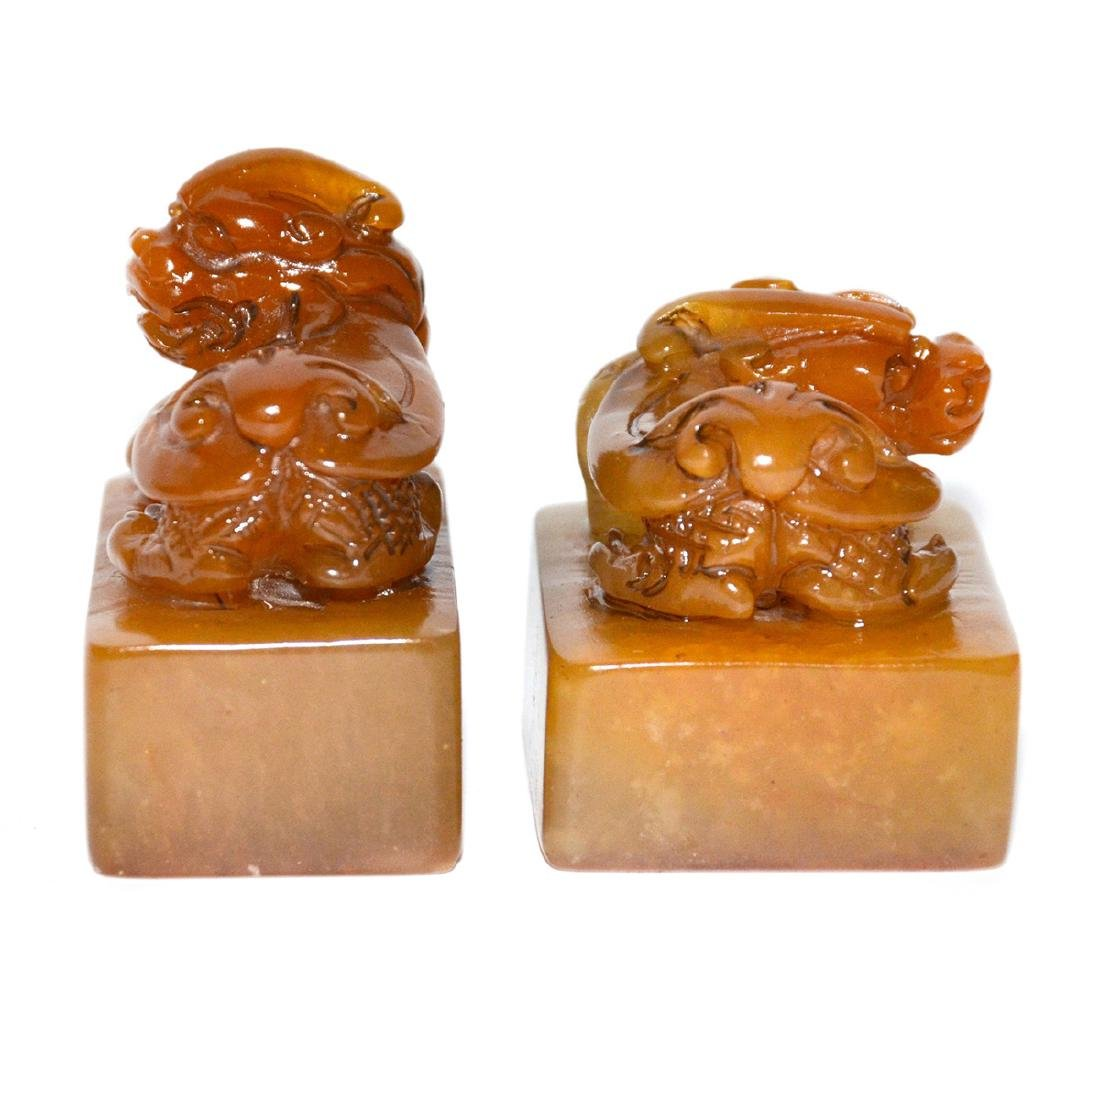 Qing Dynasty, A Pair of Tianhuang Stone Seal with - 4